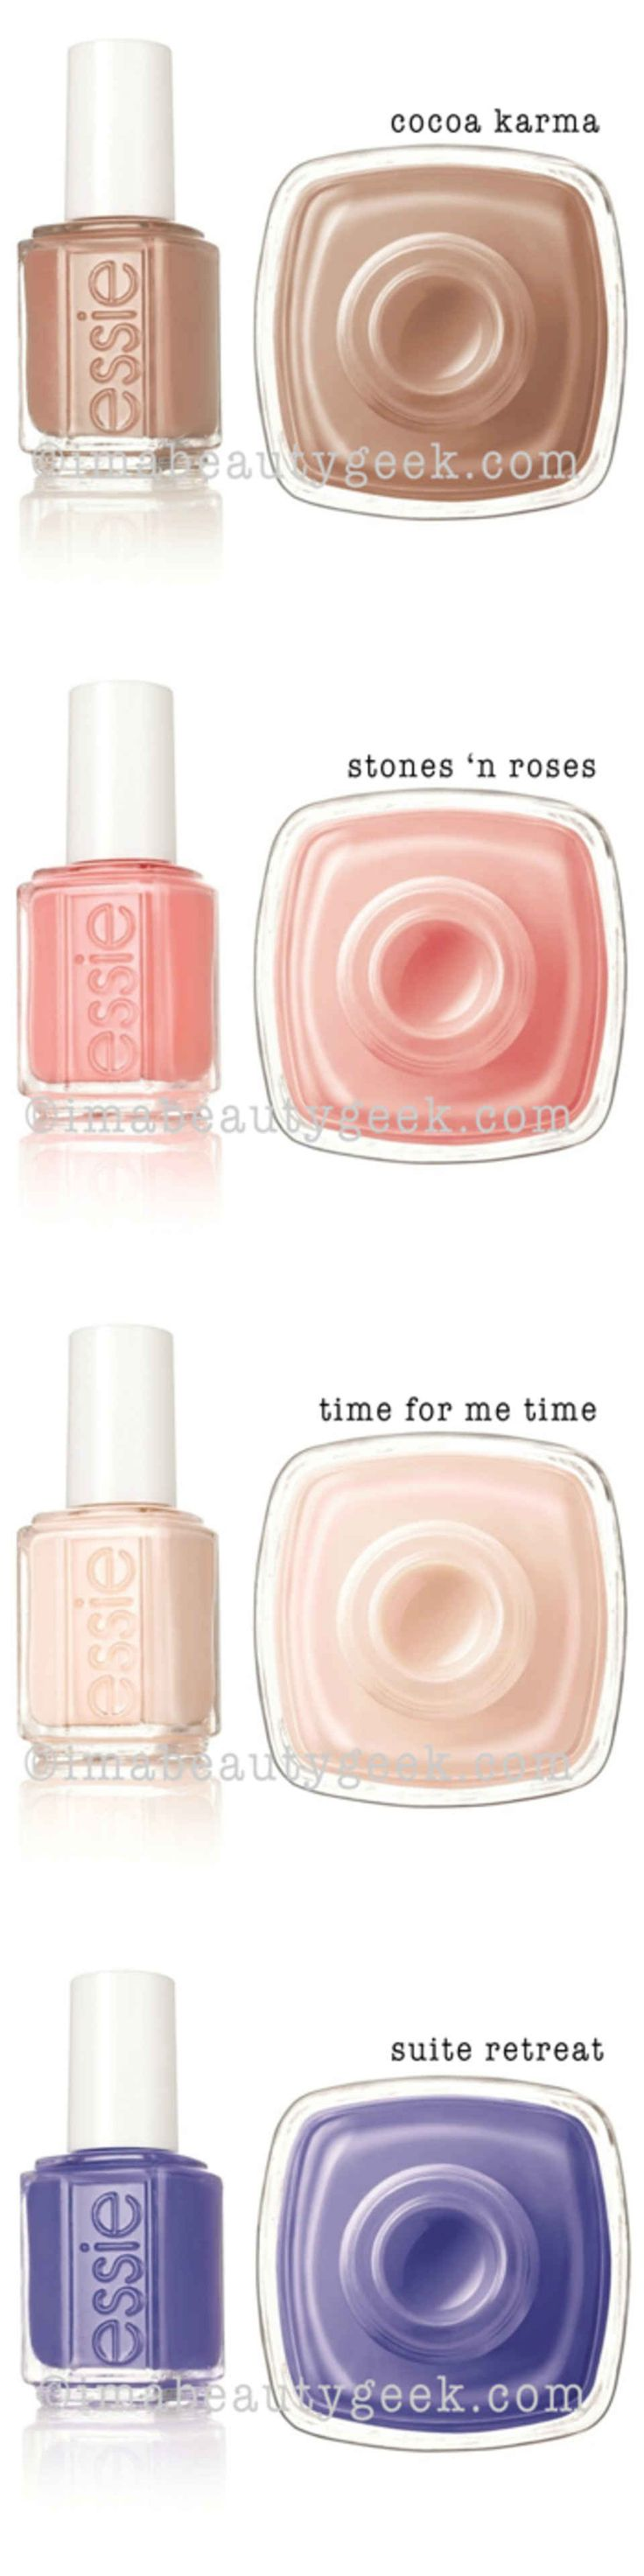 essie resort 2015 sneak peek from beautygeeks!